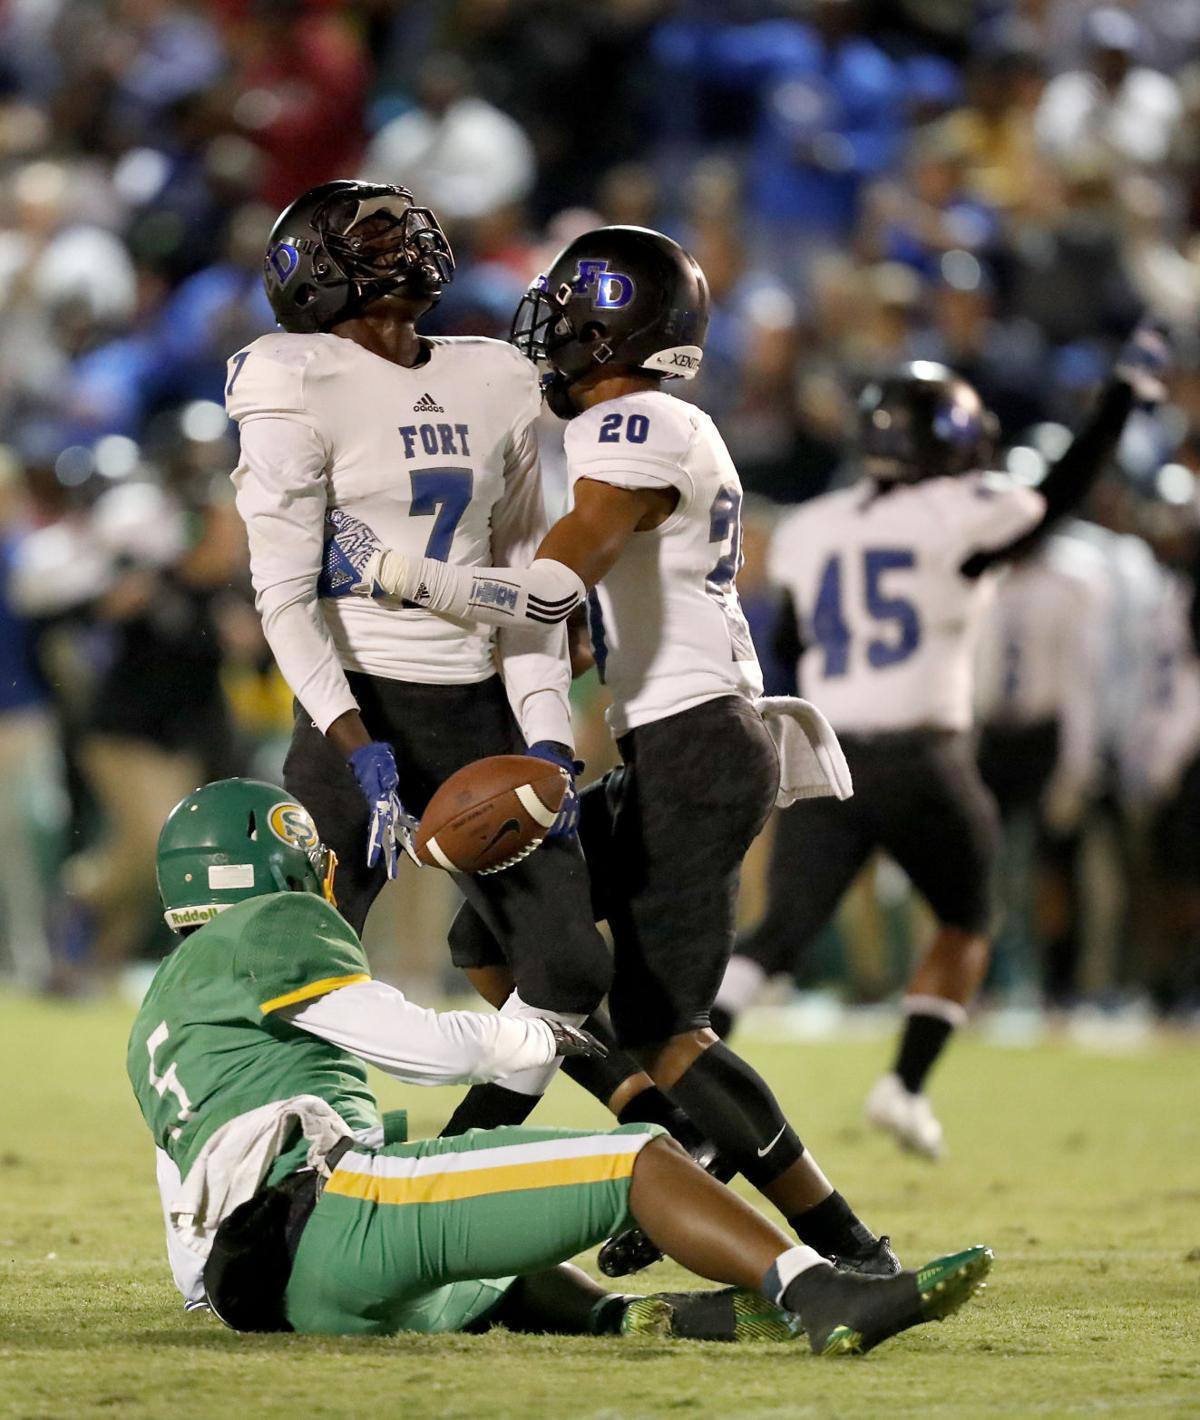 Fort Dorchester Stays Unbeaten Wins Region Title With 34 13 Victory